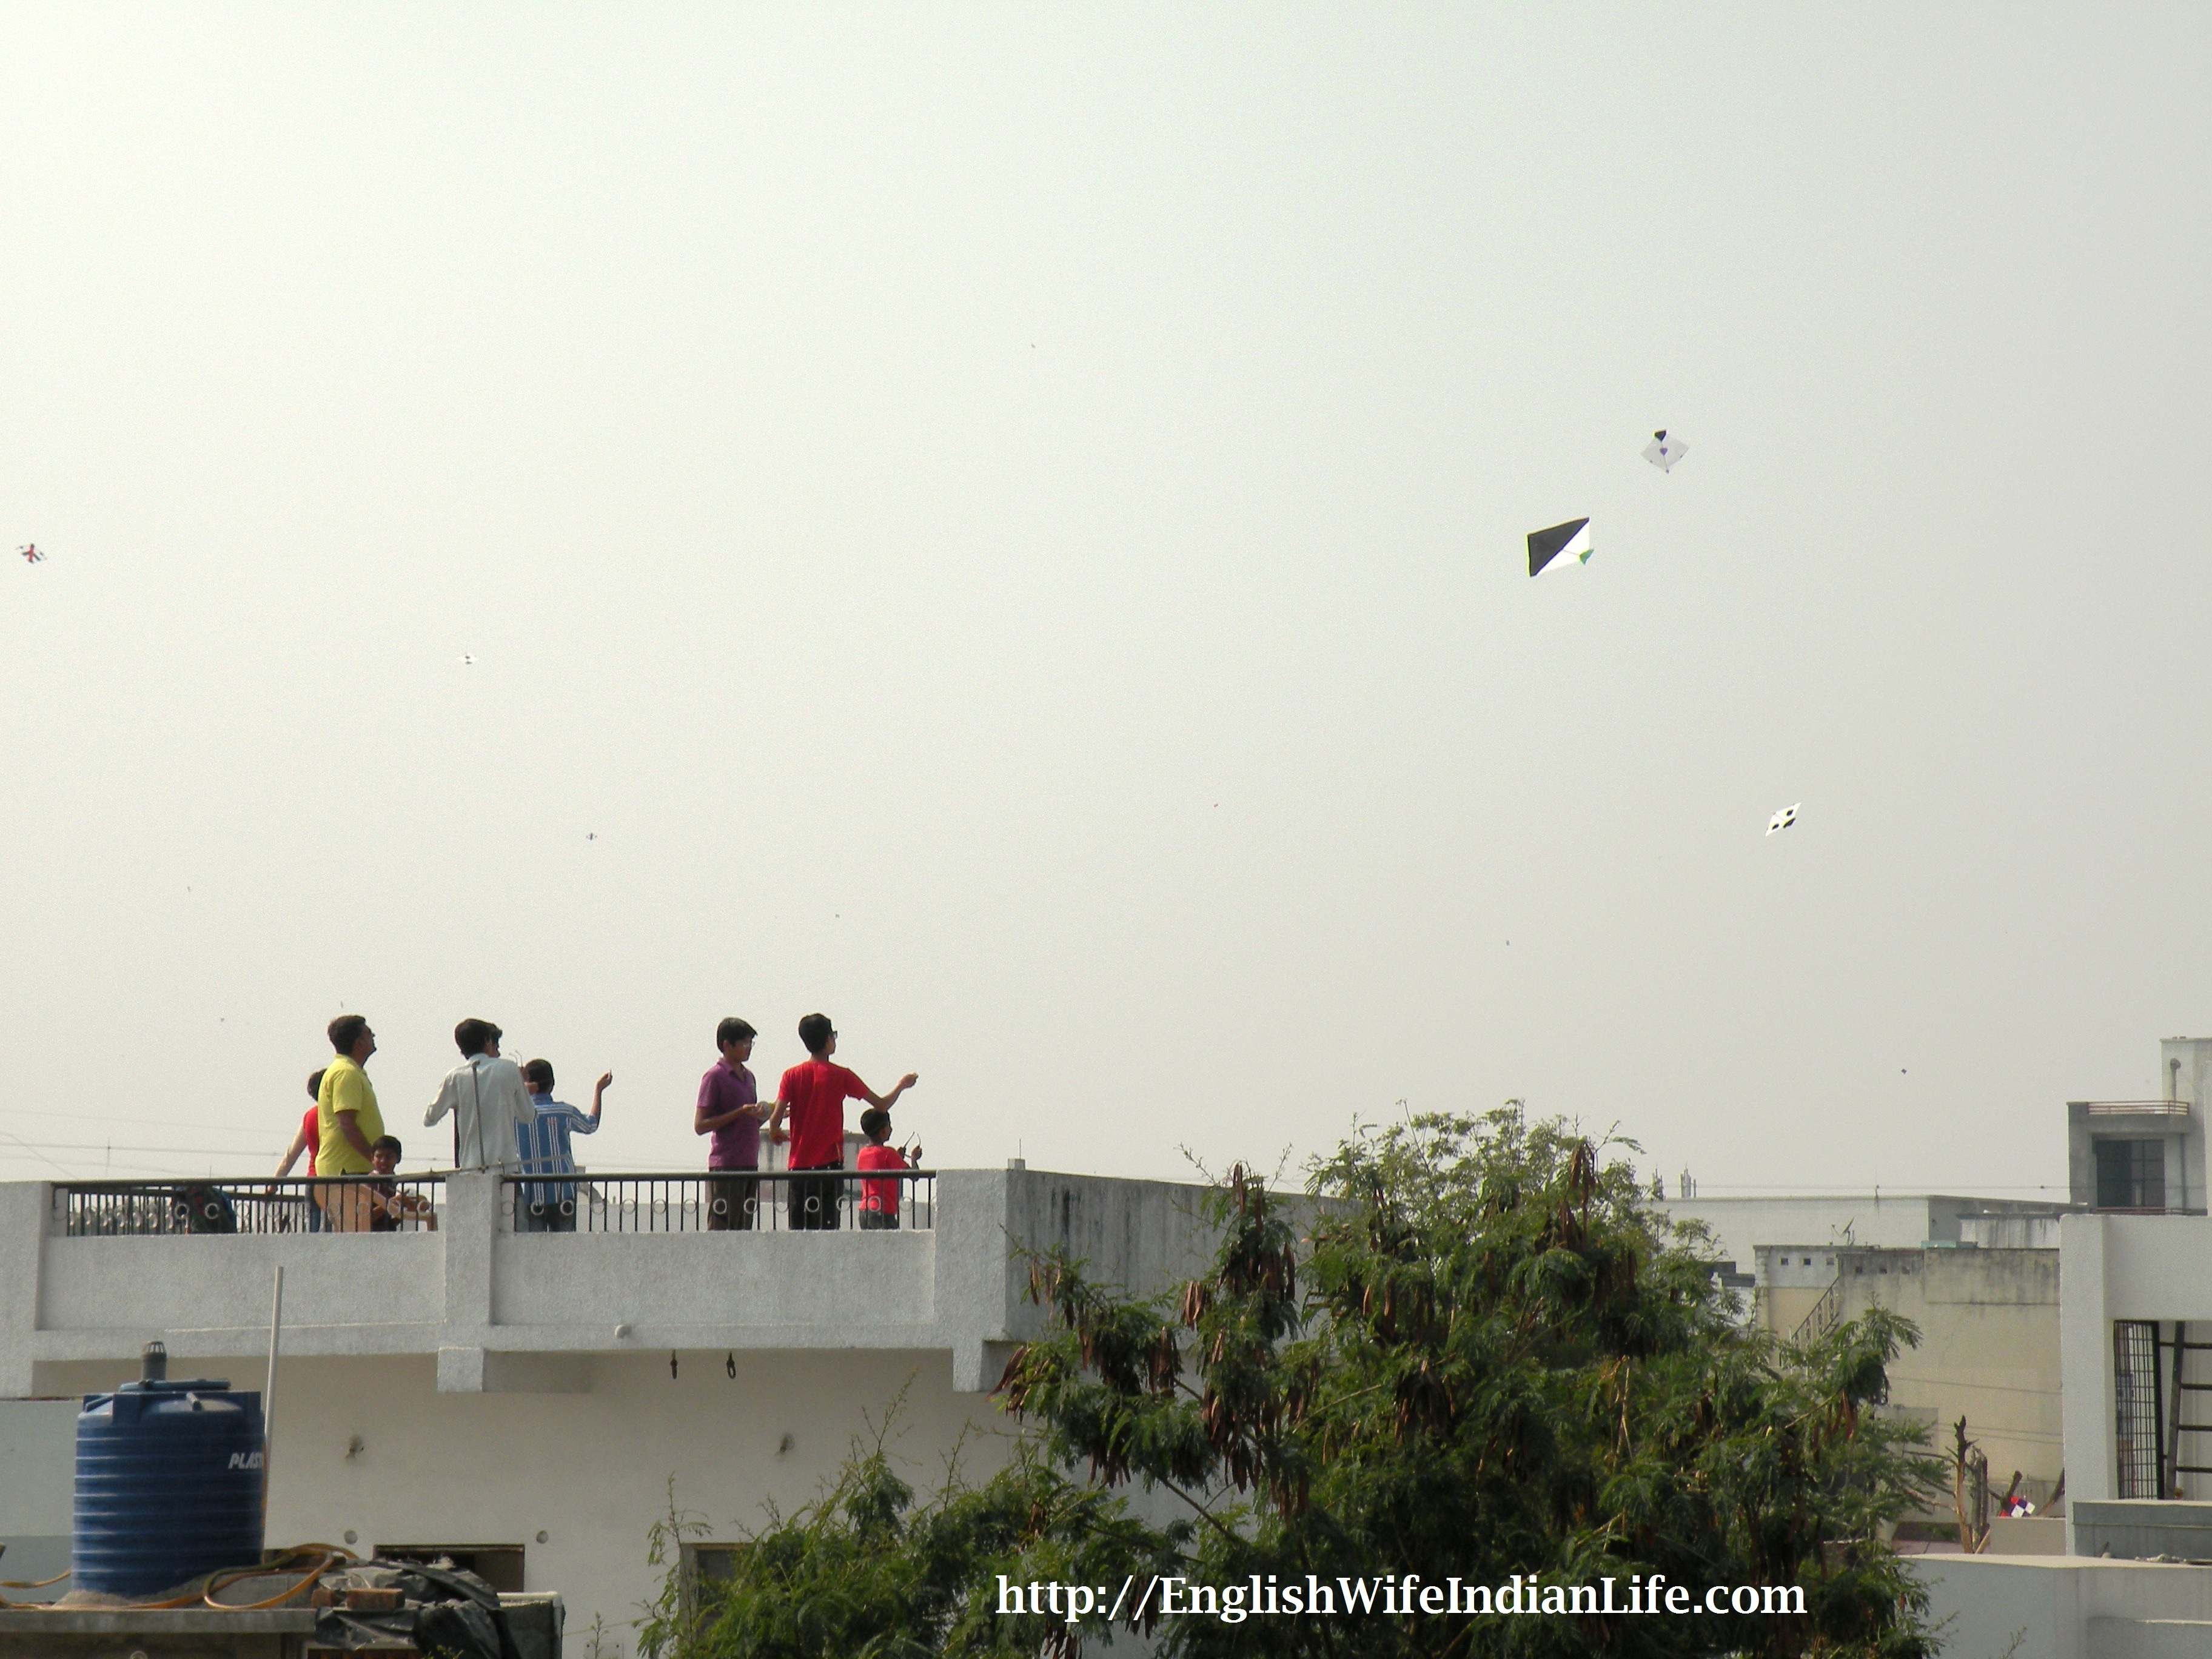 From dawn until dusk the sky remained full of kites. People were